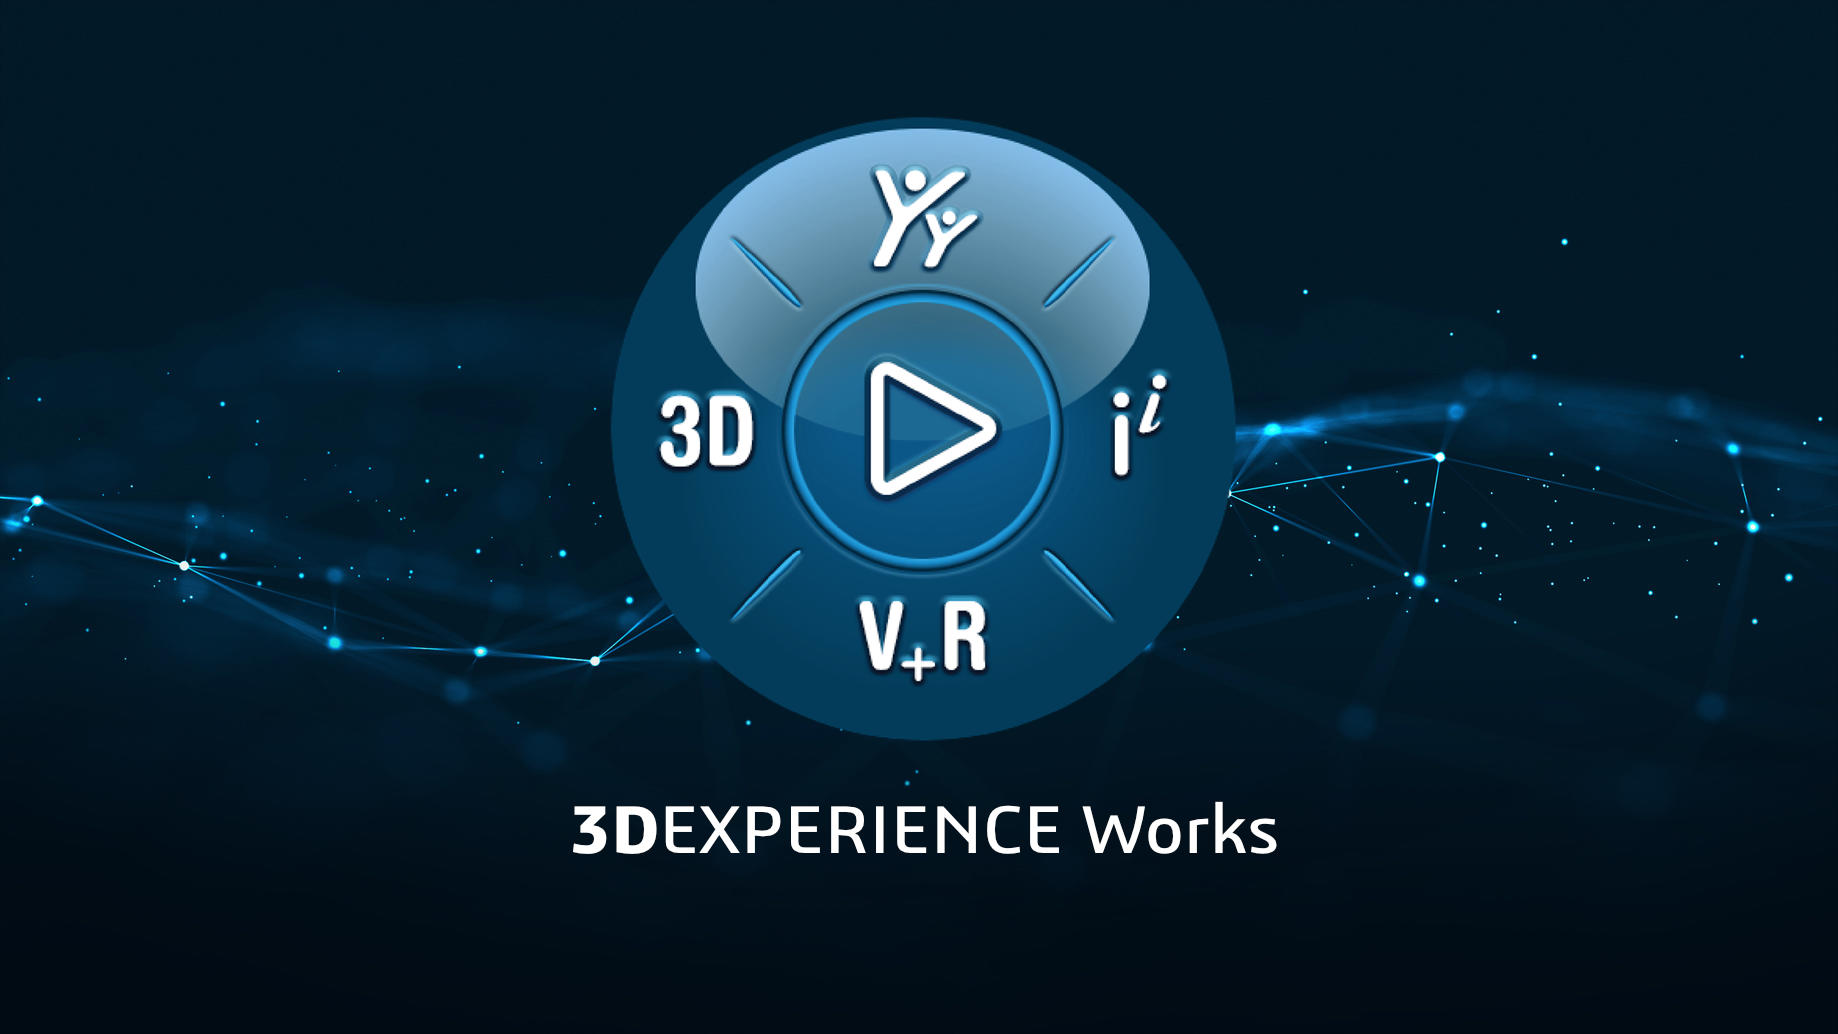 3DEXPERIENCE WORKS SOLIDWORKS